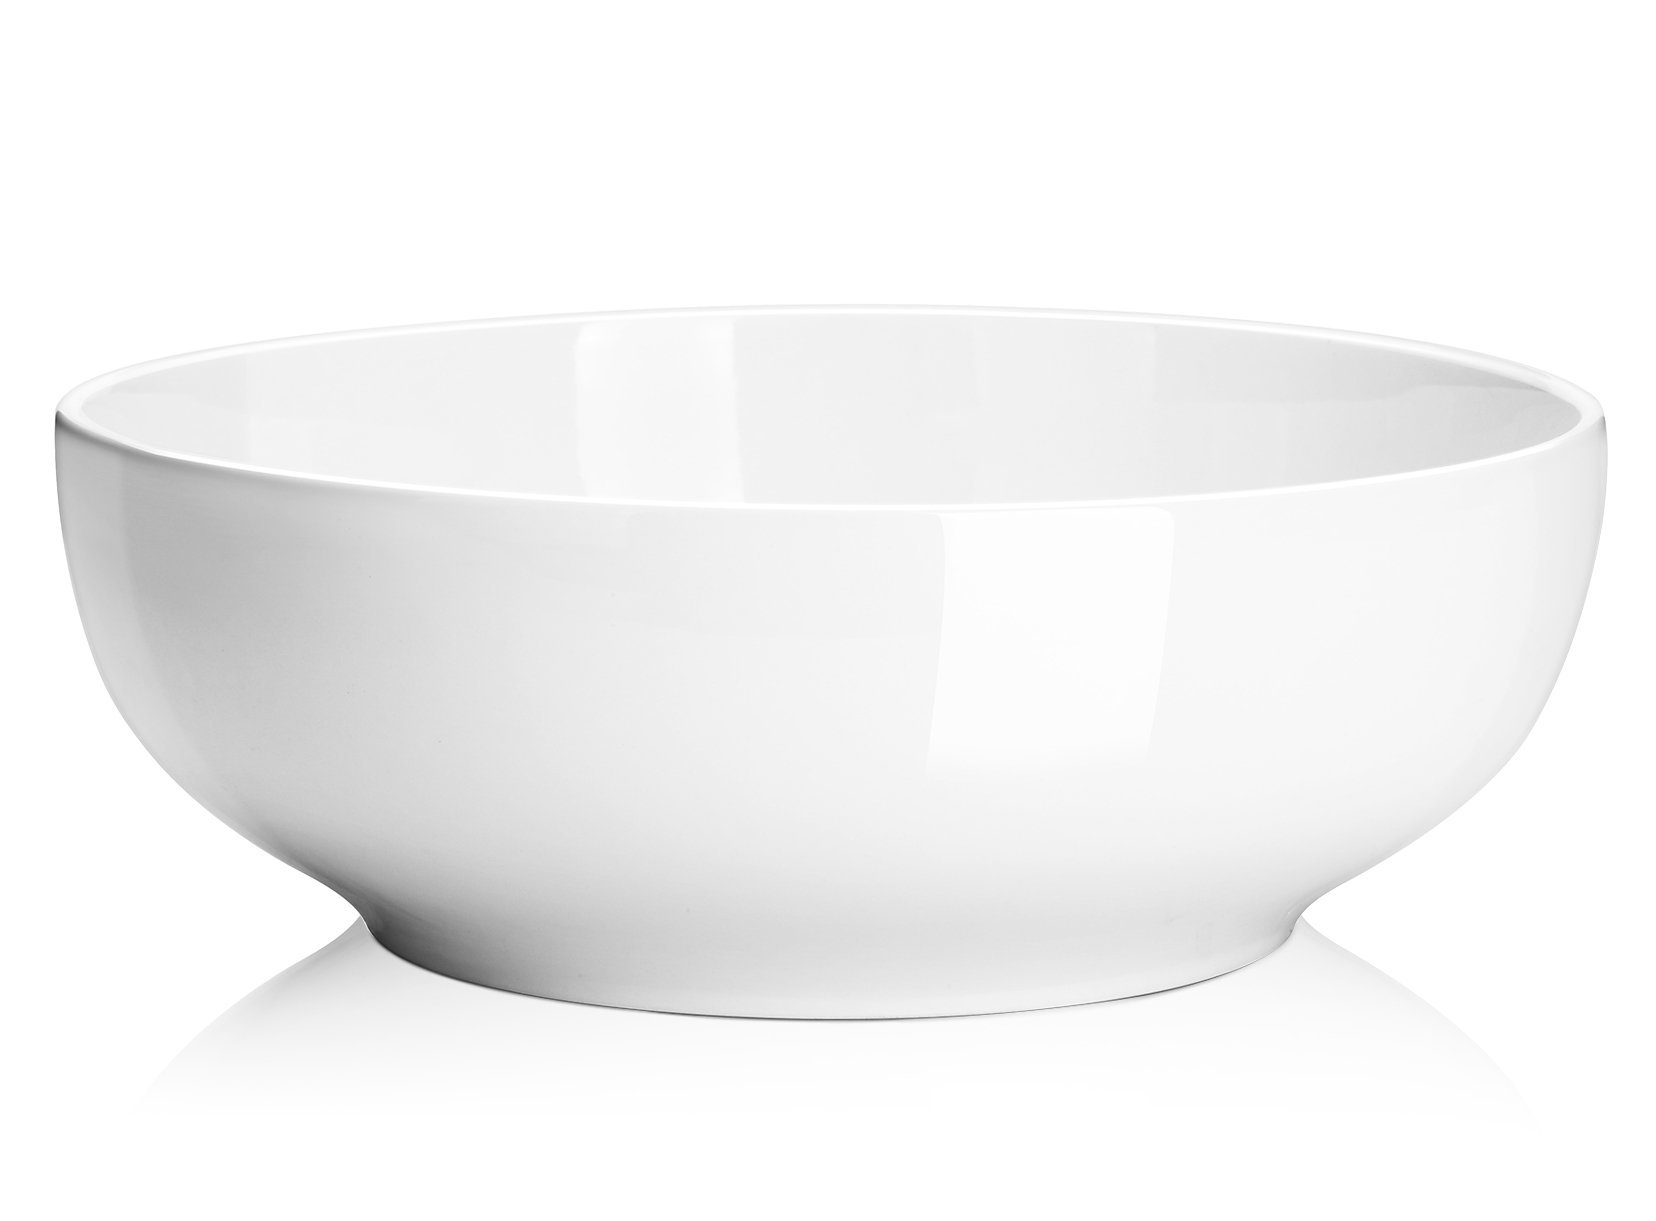 (2 Packs) DOWAN 2.5 Quarts Porcelain Serving Bowls, Salad Bowls, Pasta Bowl Set, White, Stackable by DOWAN